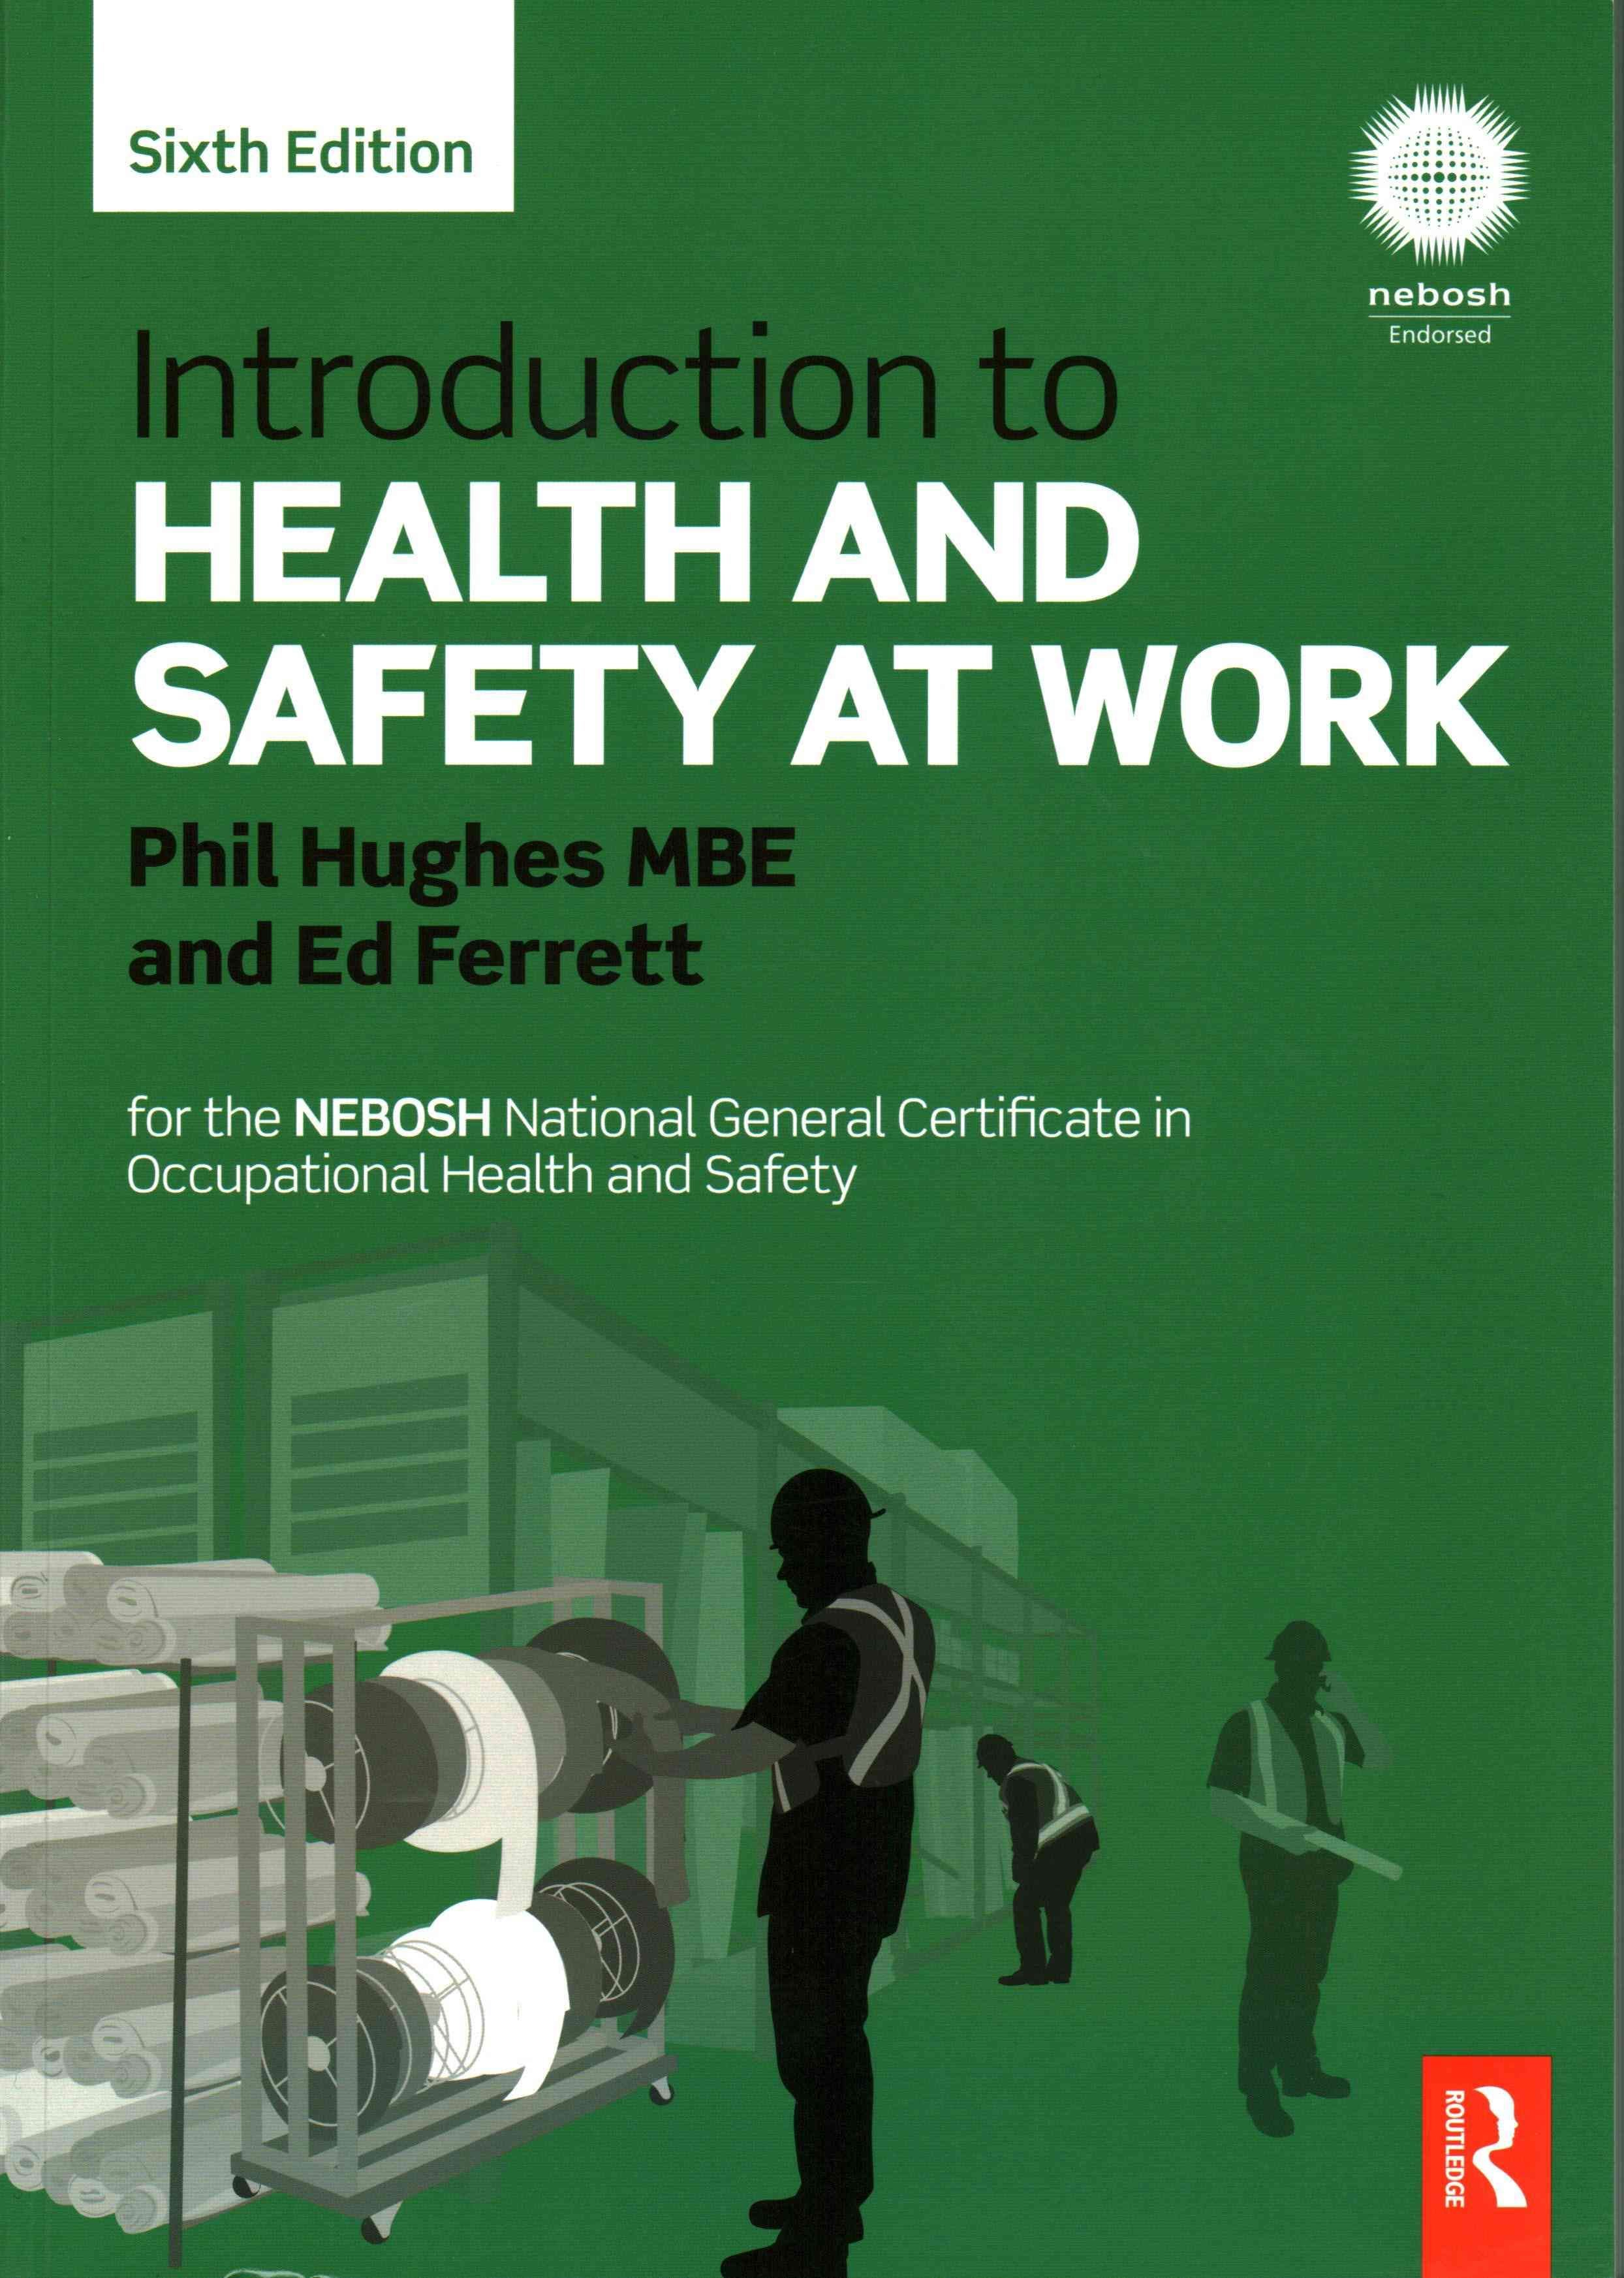 Introduction to Health and Safety at Work For the Nebosh